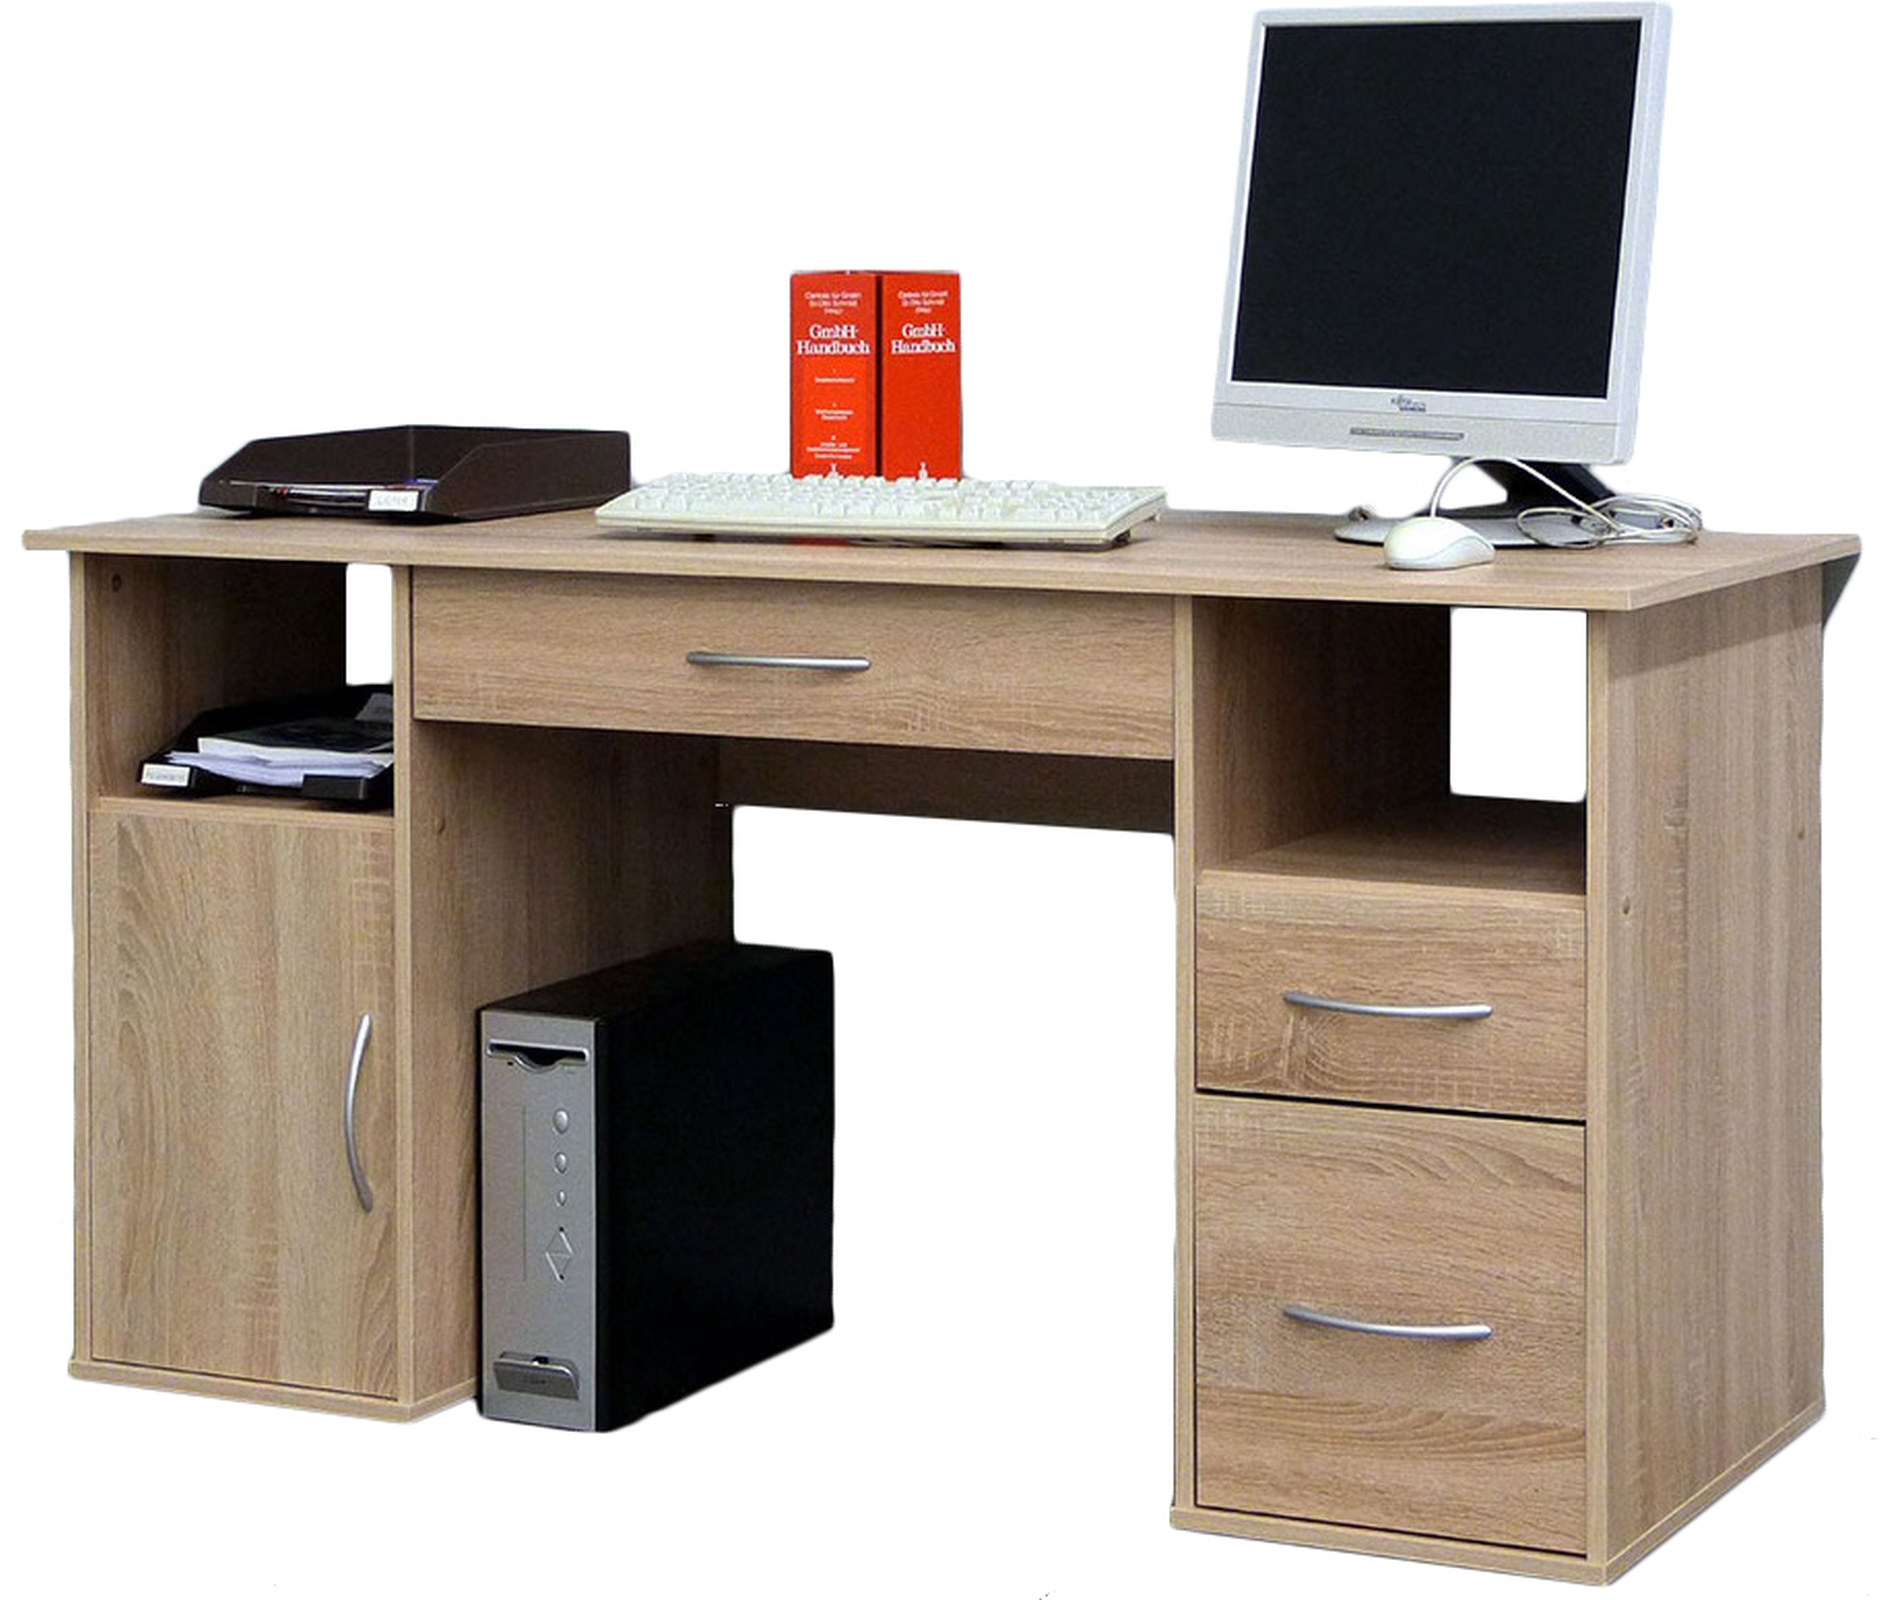 vcm gruppe schreibtisch tisch computertisch laptop pc. Black Bedroom Furniture Sets. Home Design Ideas